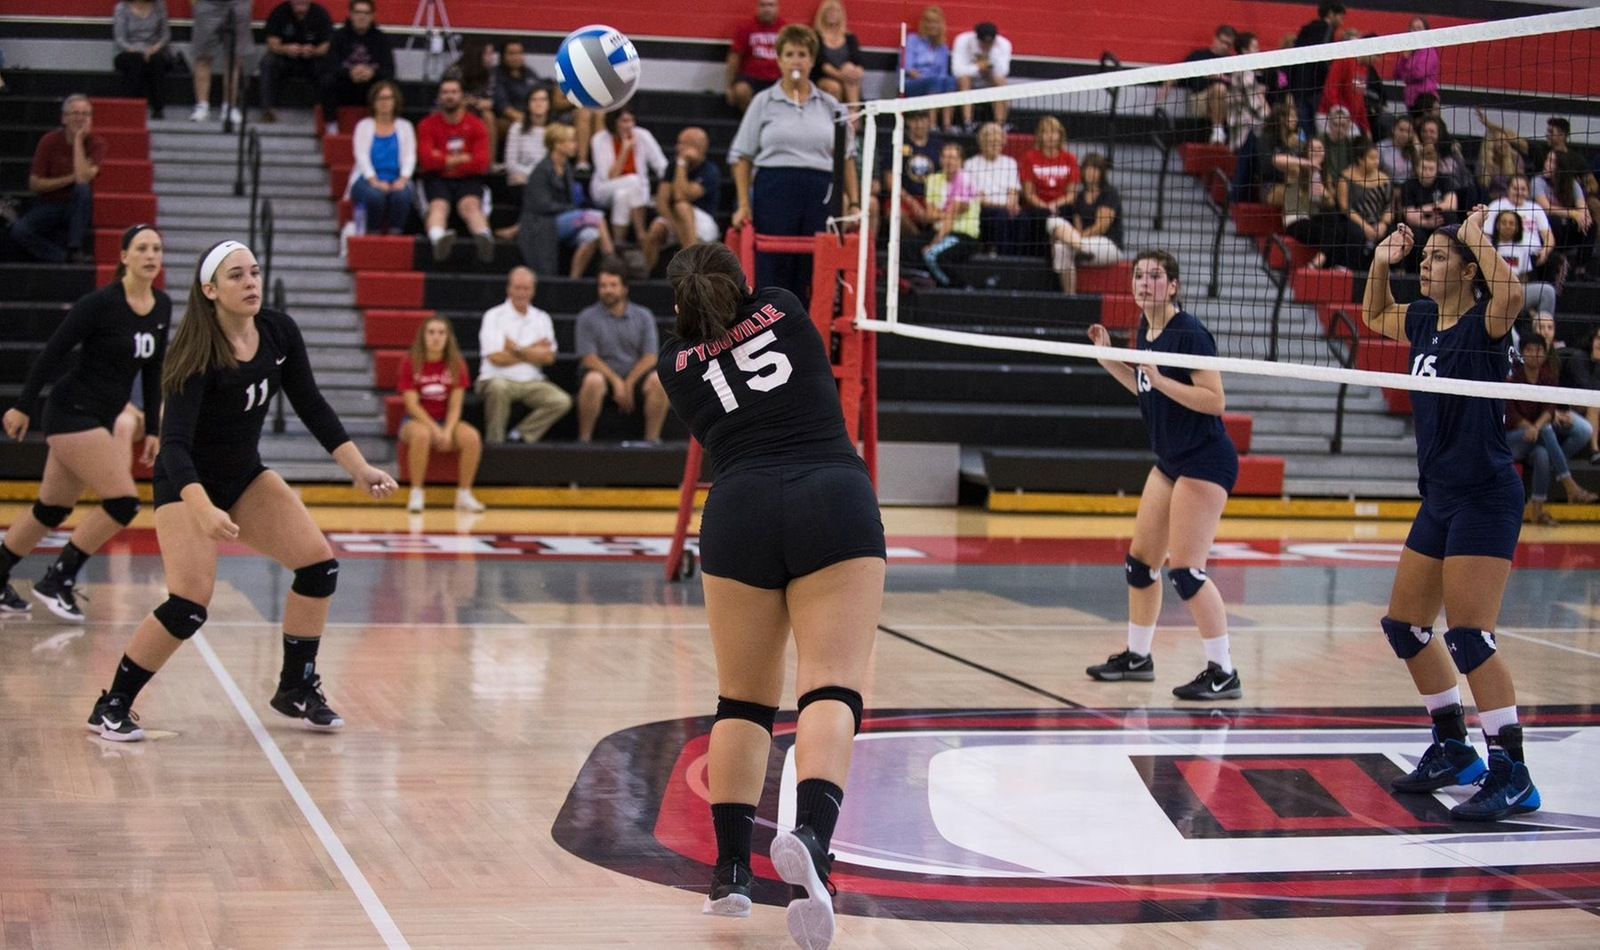 Rochester Sweeps D'Youville in Three Sets